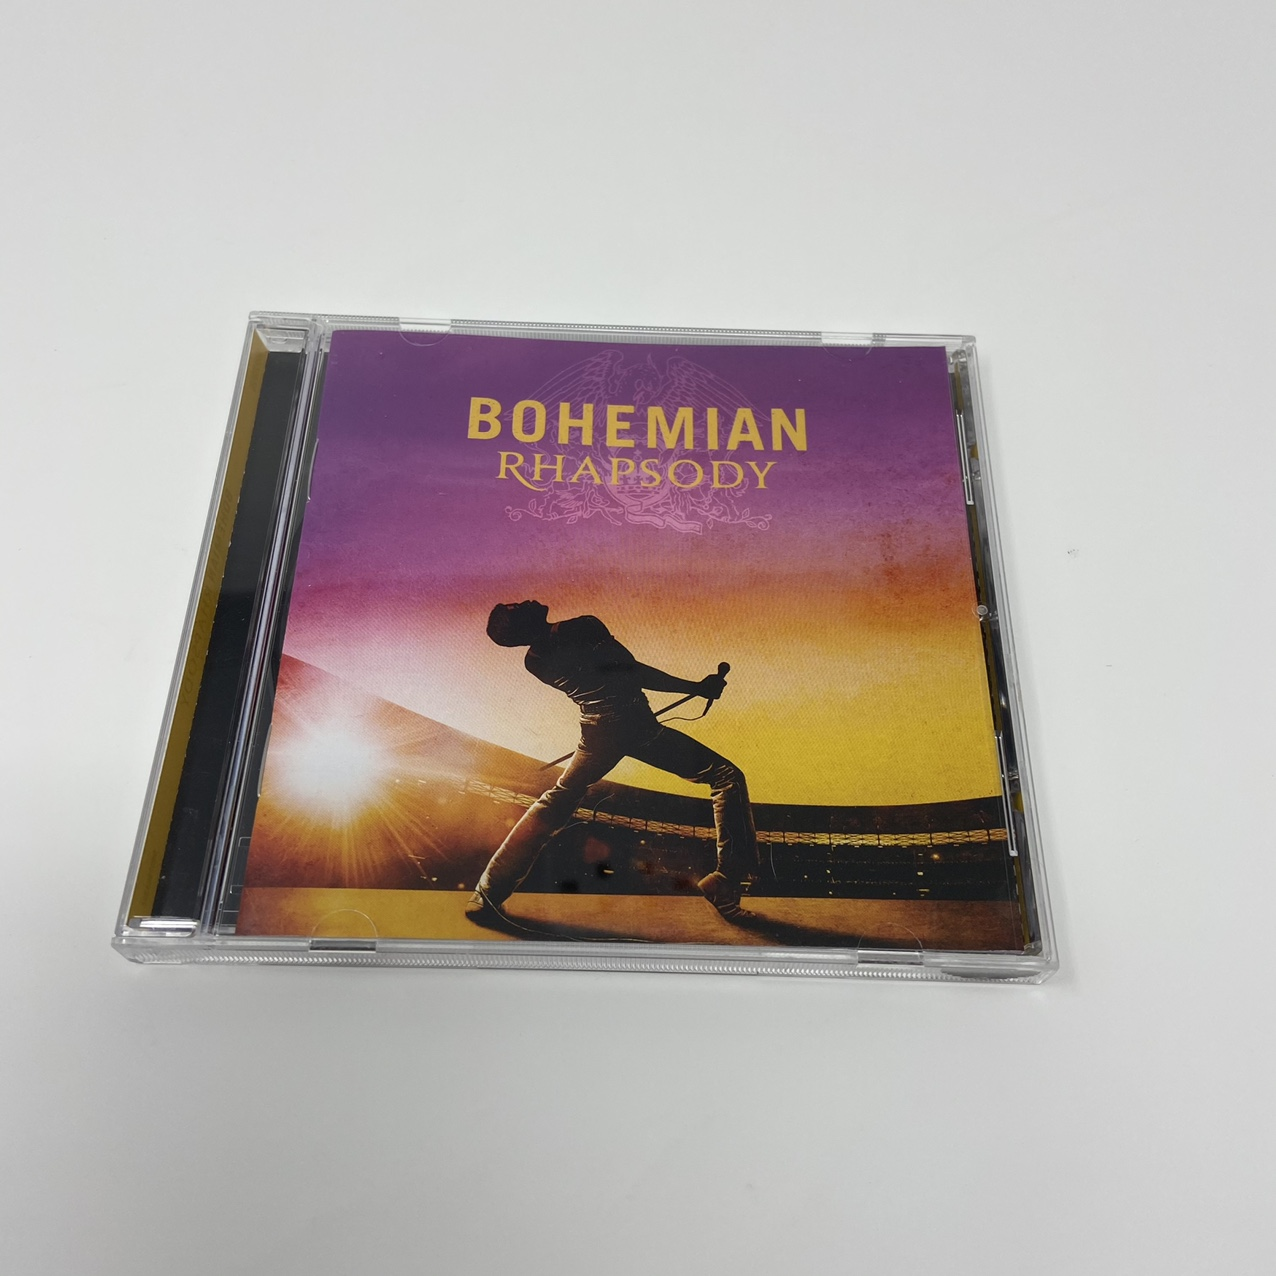 Product Image 1 - Queen Bohemian Rhapsody CD Player!